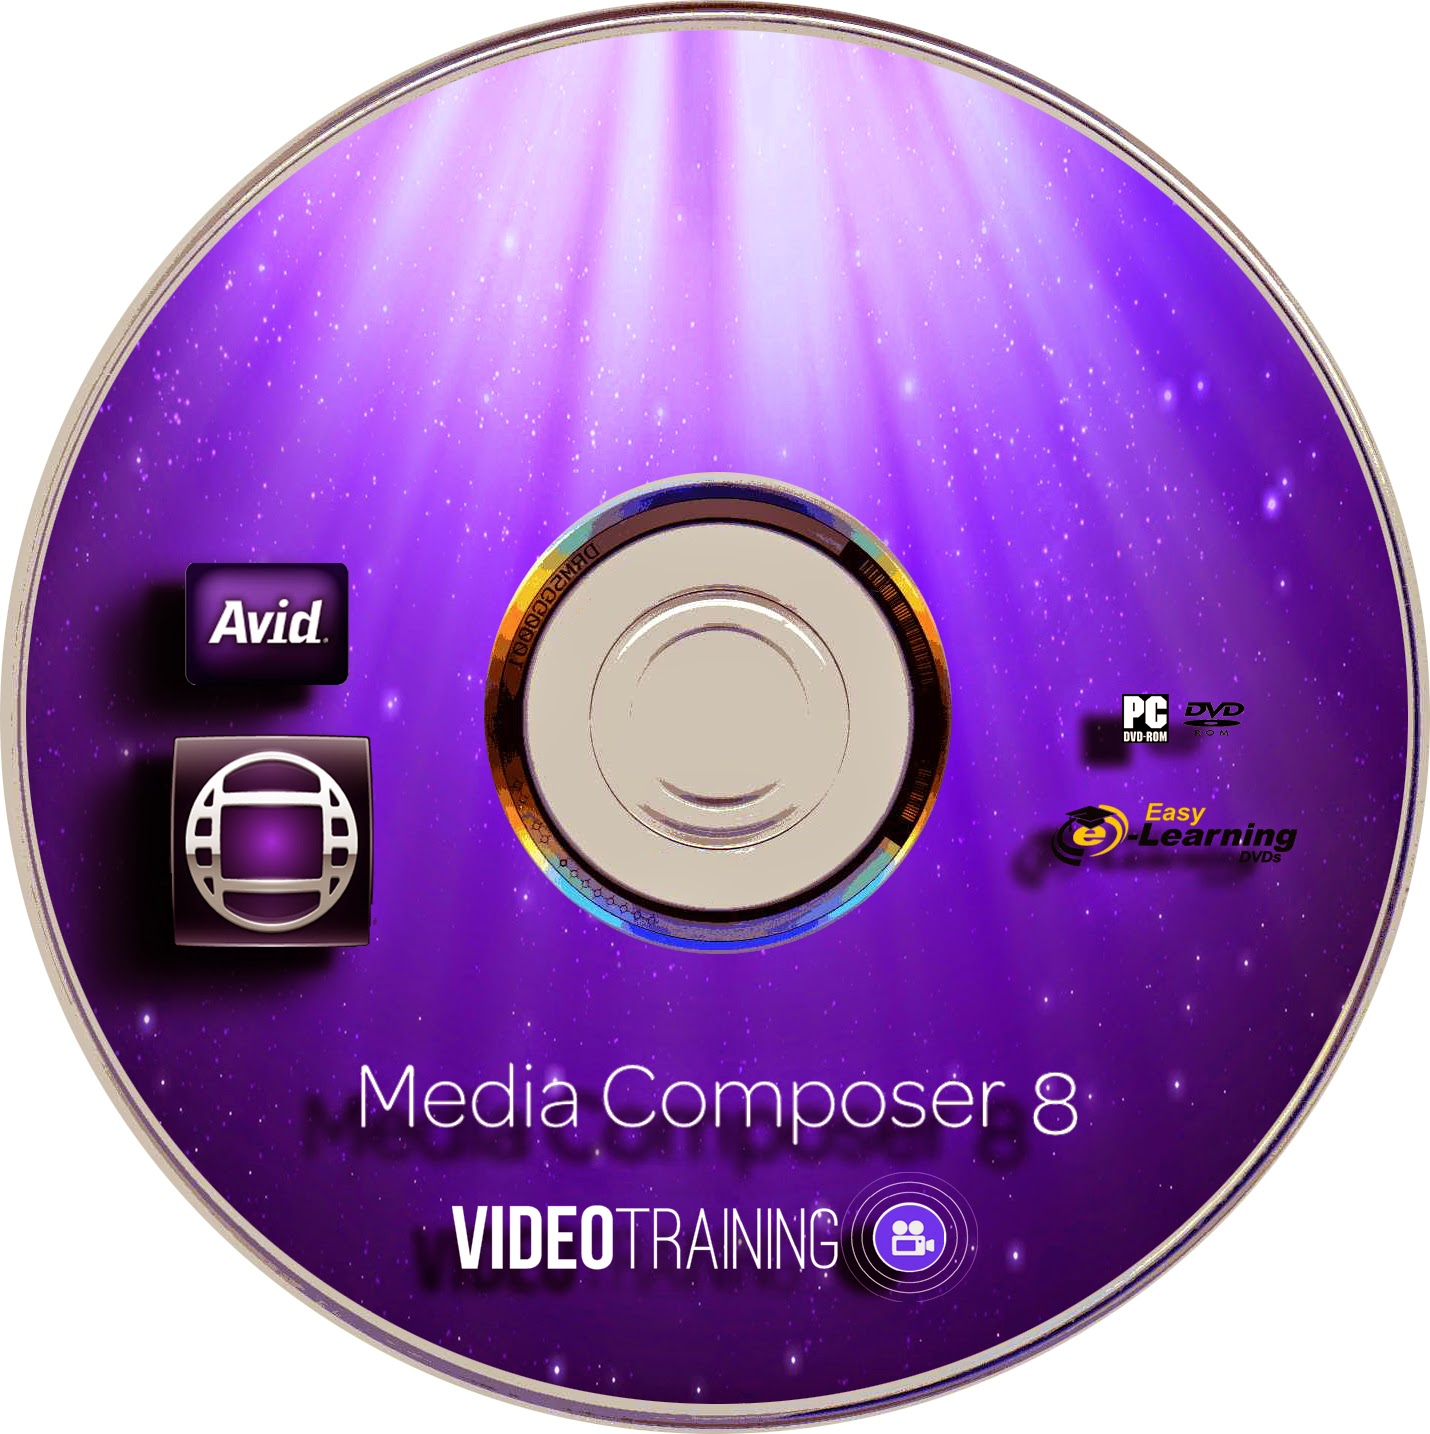 Learn Avid Media Composer 8 Video Training Tutorial DVD